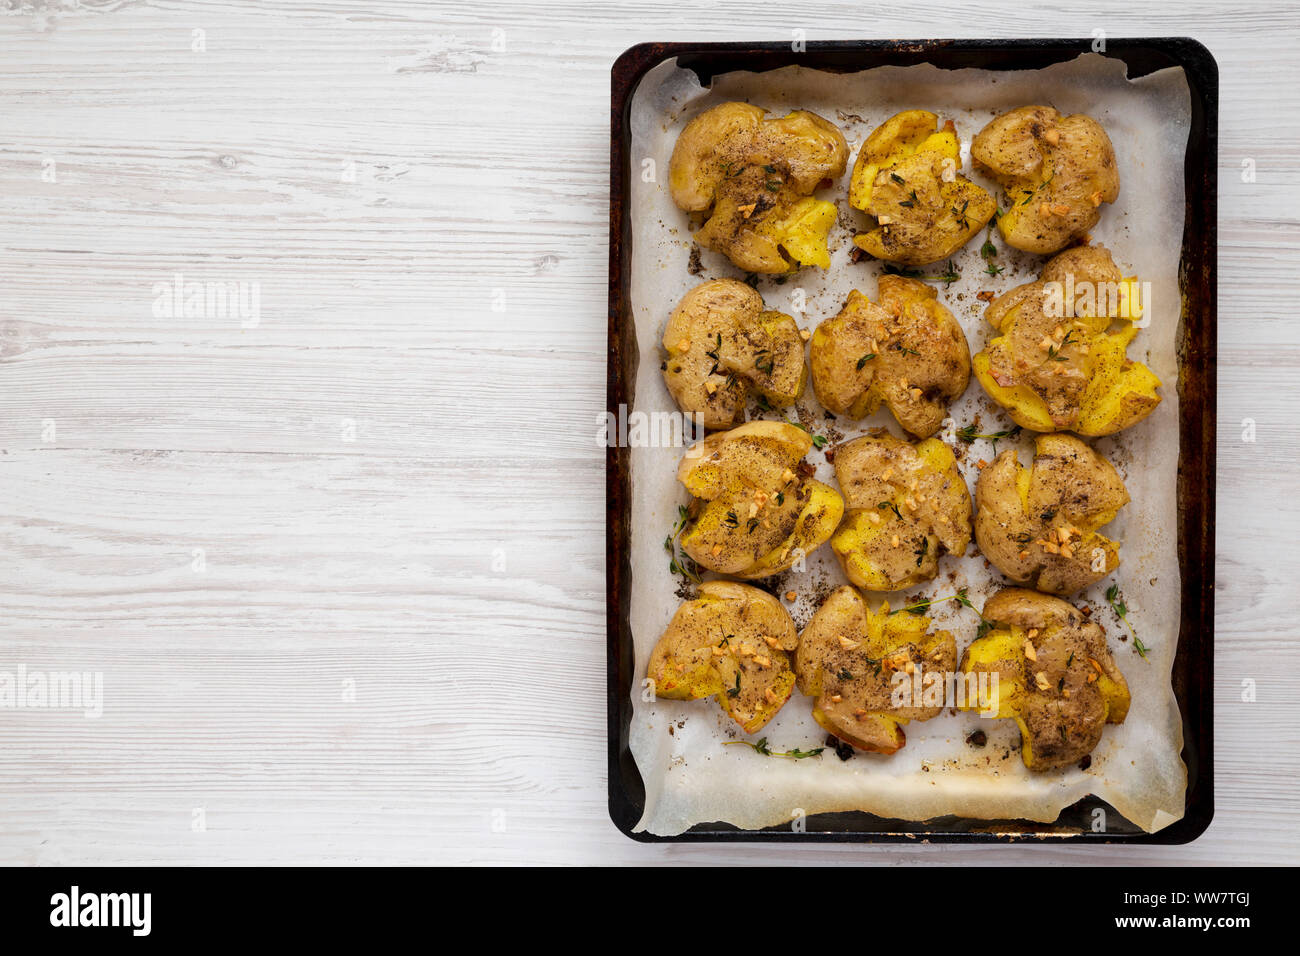 Homemade garlic thyme smashed potatoes on a tray, top view. Flat lay, overhead, from above. Copy space. Stock Photo